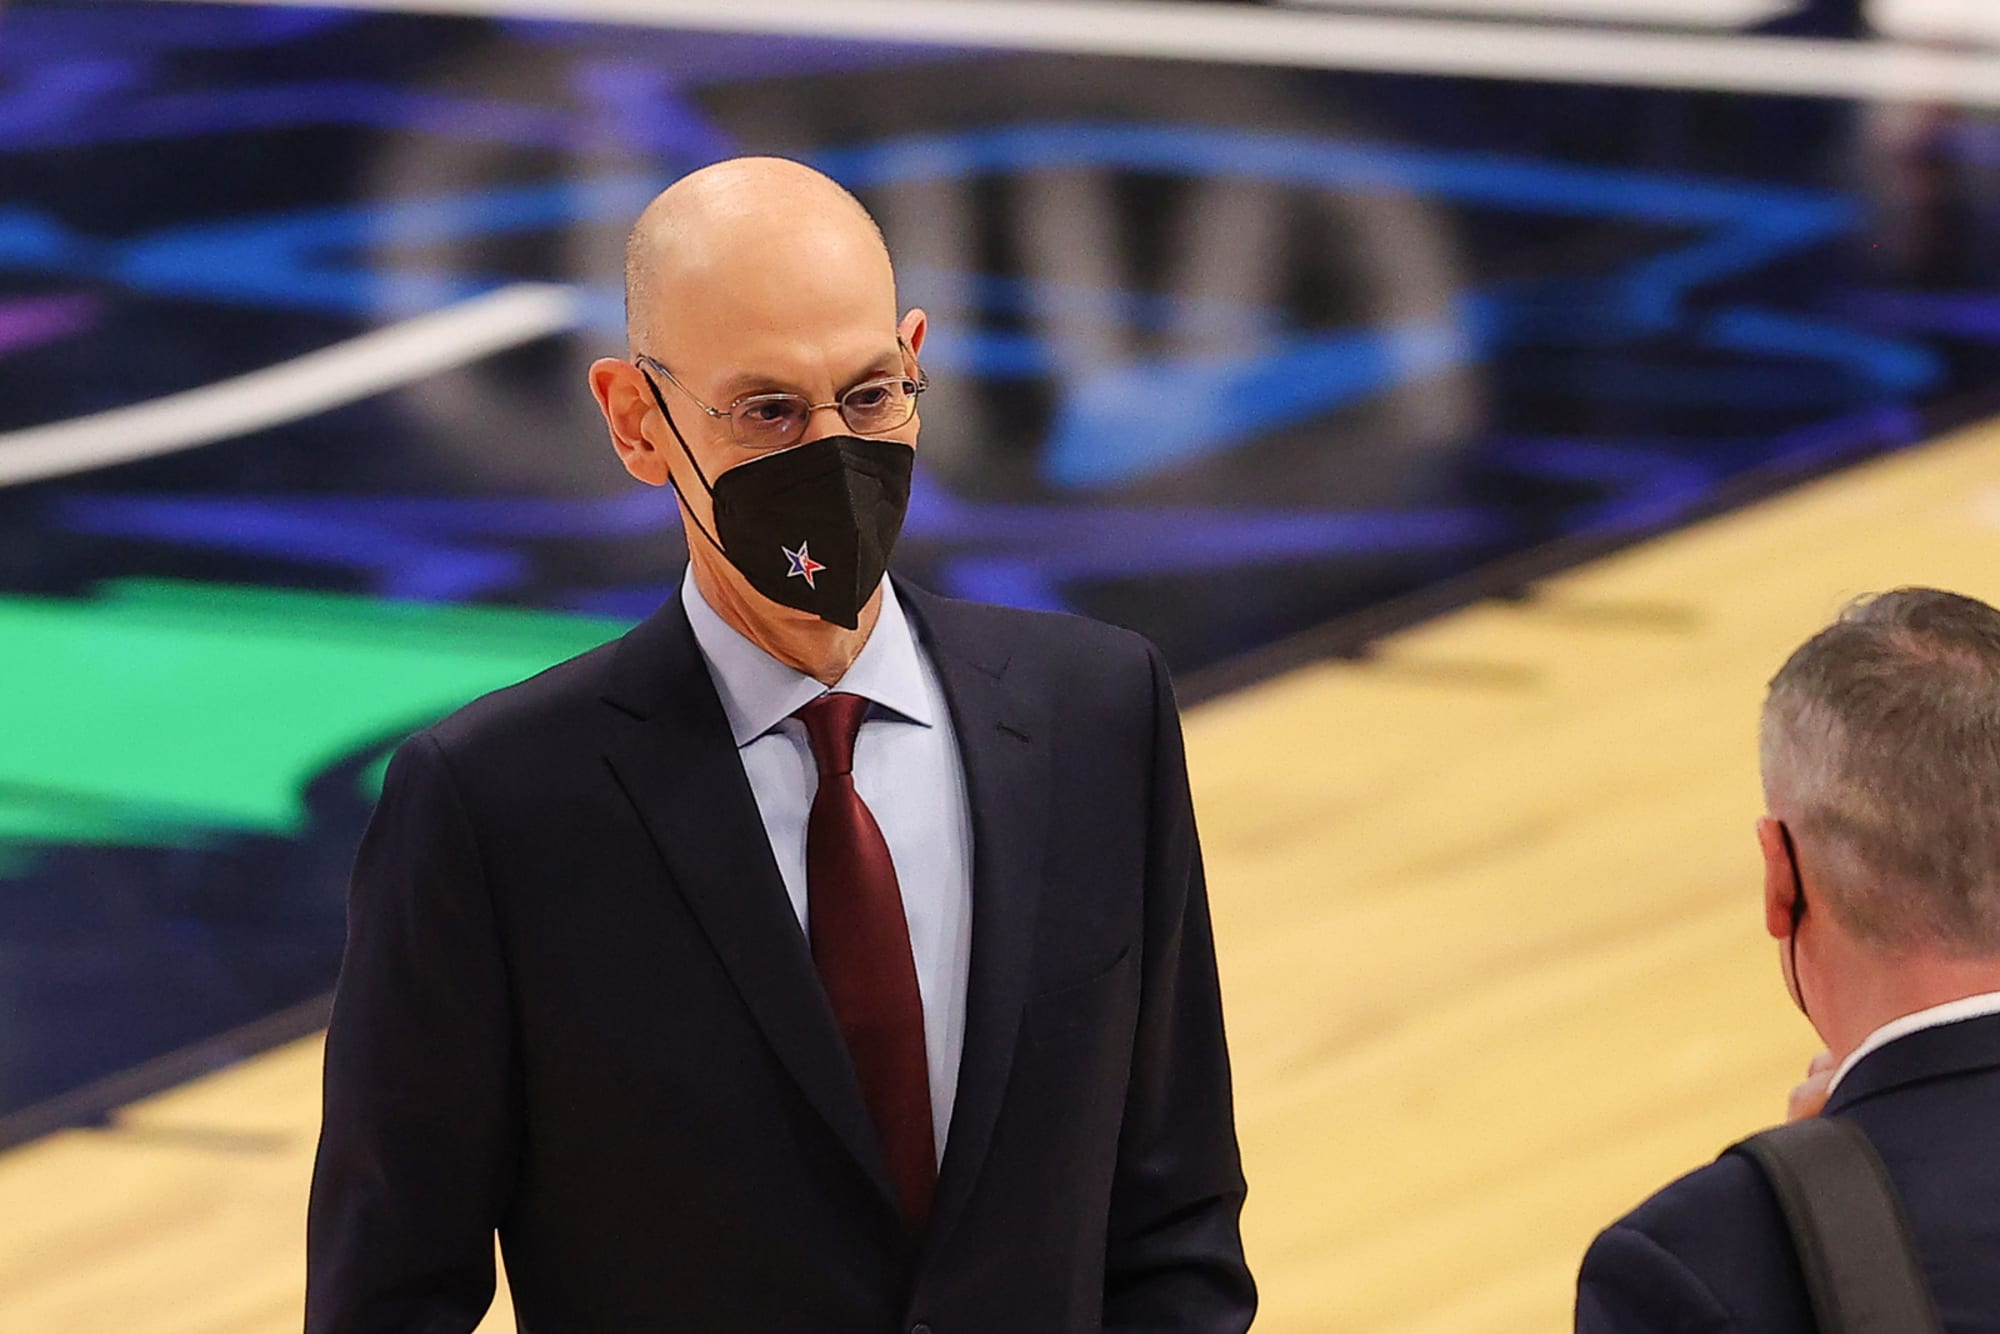 Toronto Raptors: Adam Silver hints that playing in Canada is not a done deal